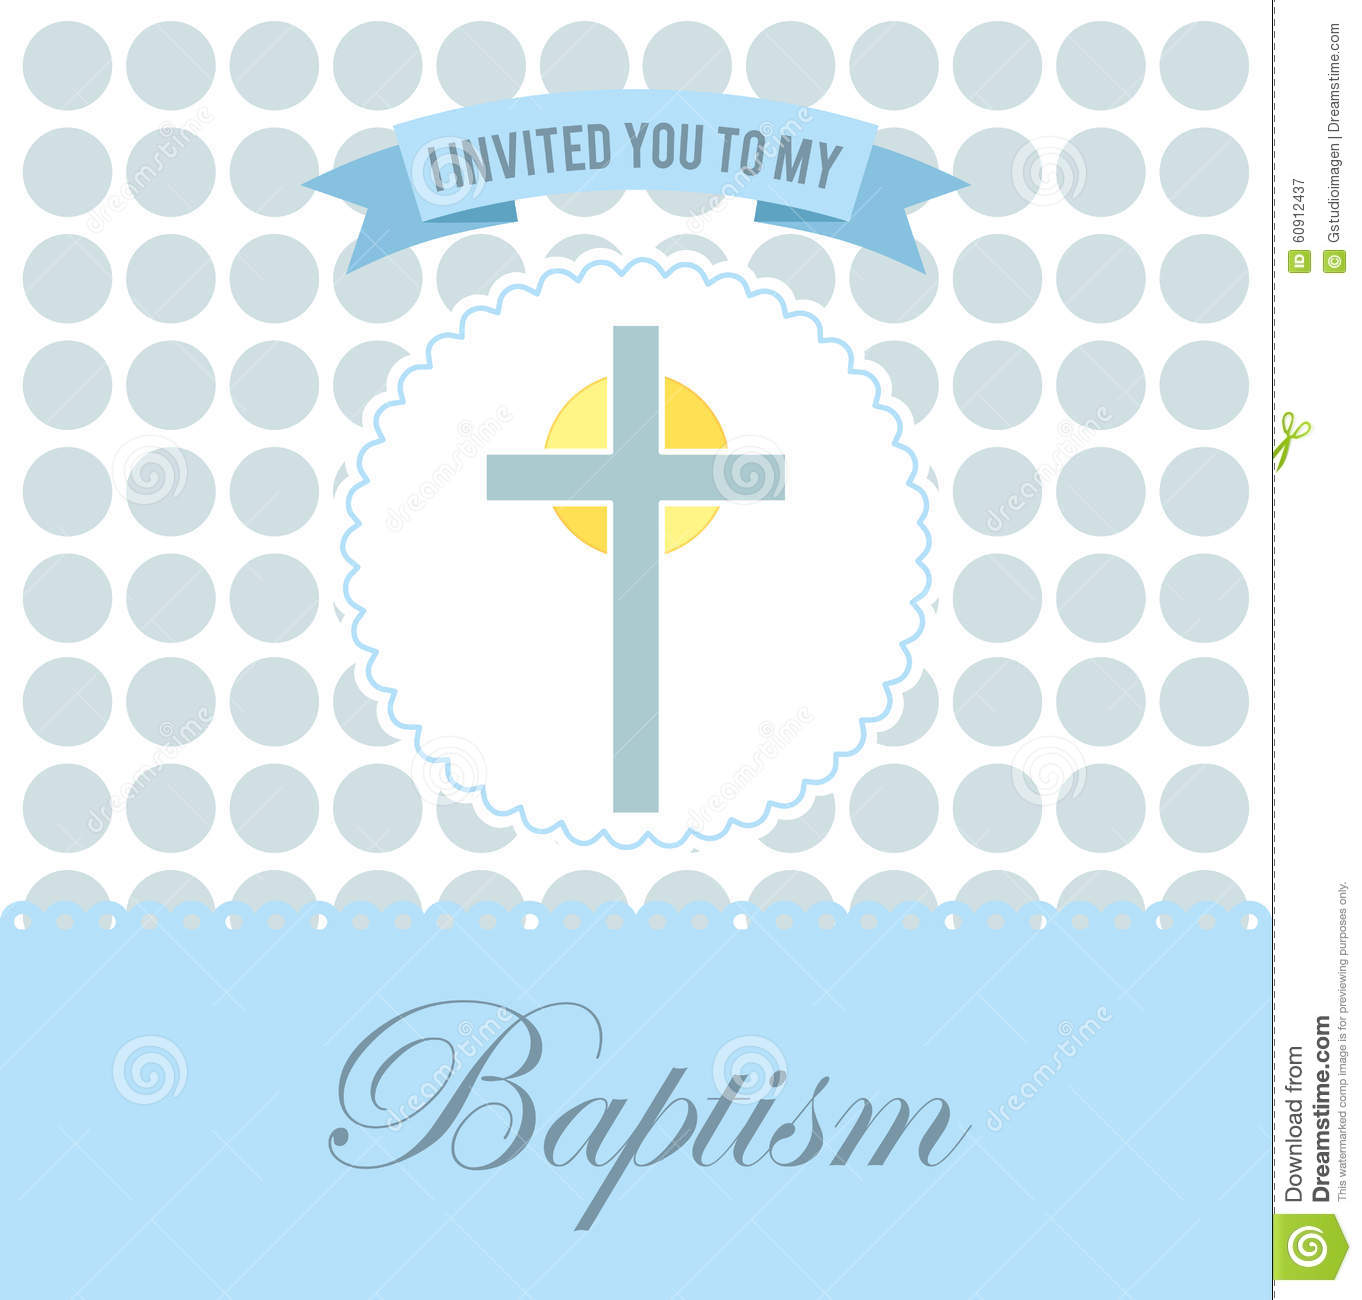 Baptism invitation design stock vector illustration of type 60912437 download baptism invitation design stock vector illustration of type 60912437 stopboris